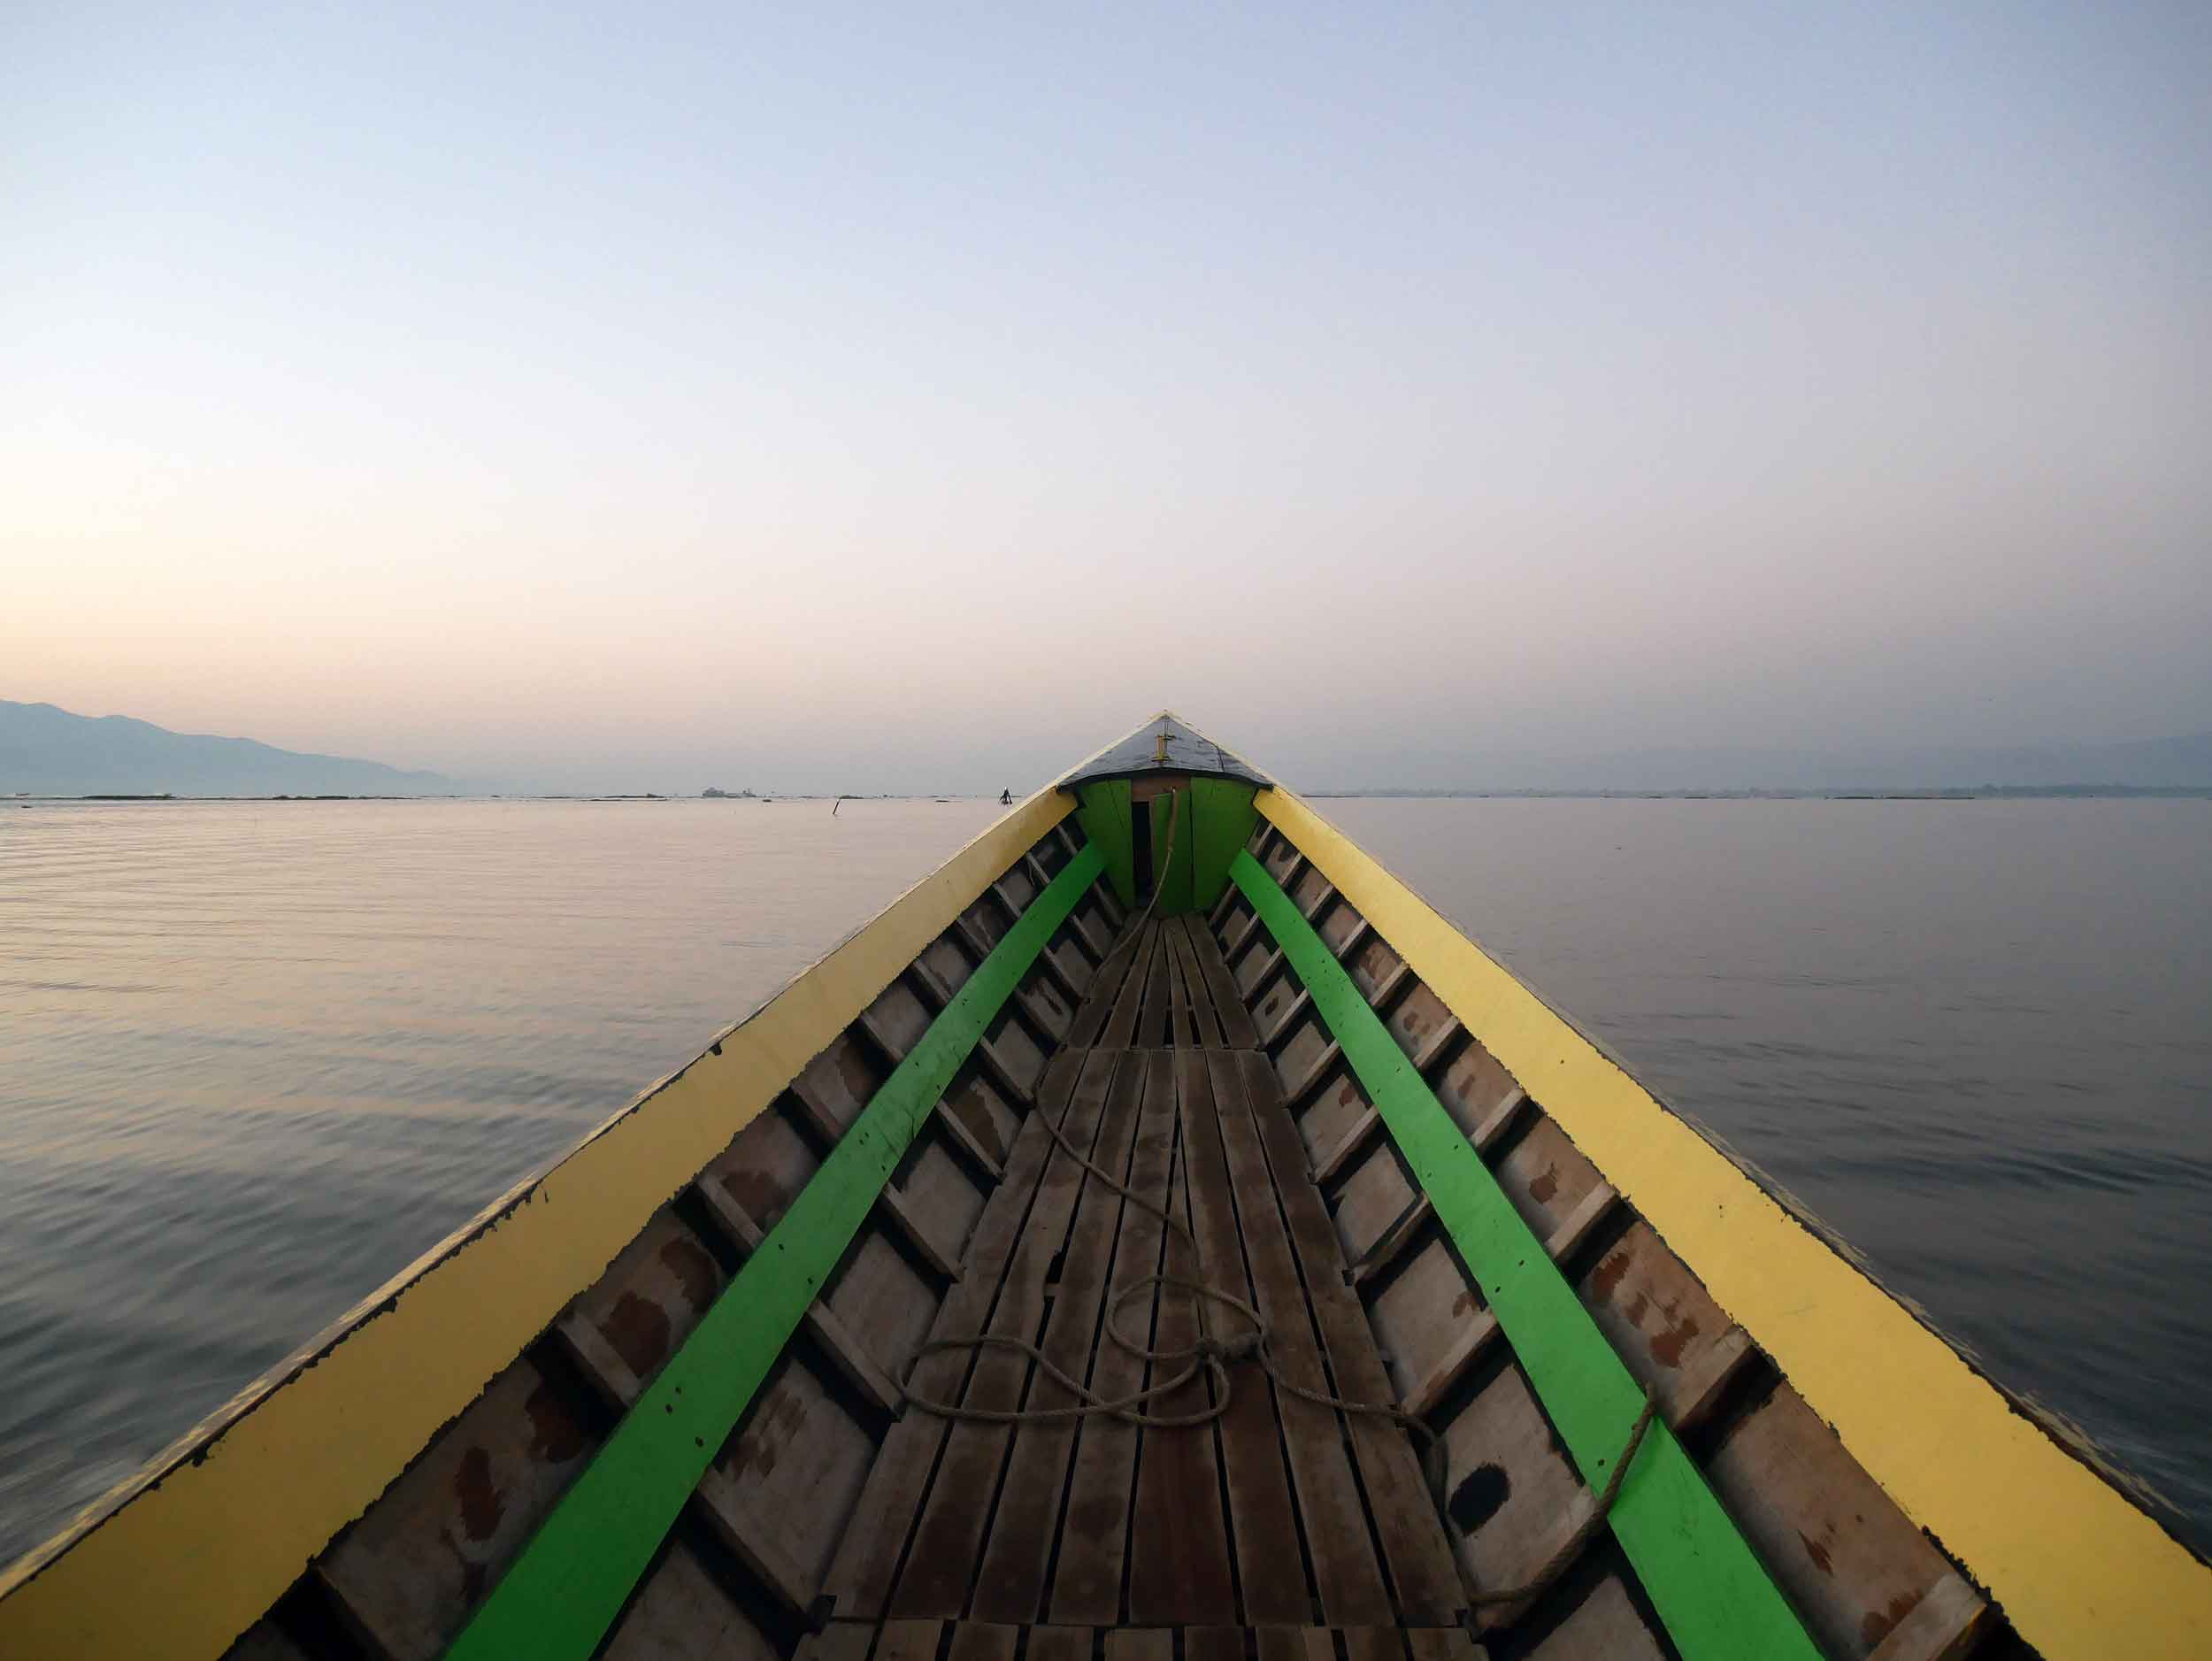 Another early rise as we took a long boat to watch the fishermen at sunrise and spend a day exploring Inle Lake (Feb 22).